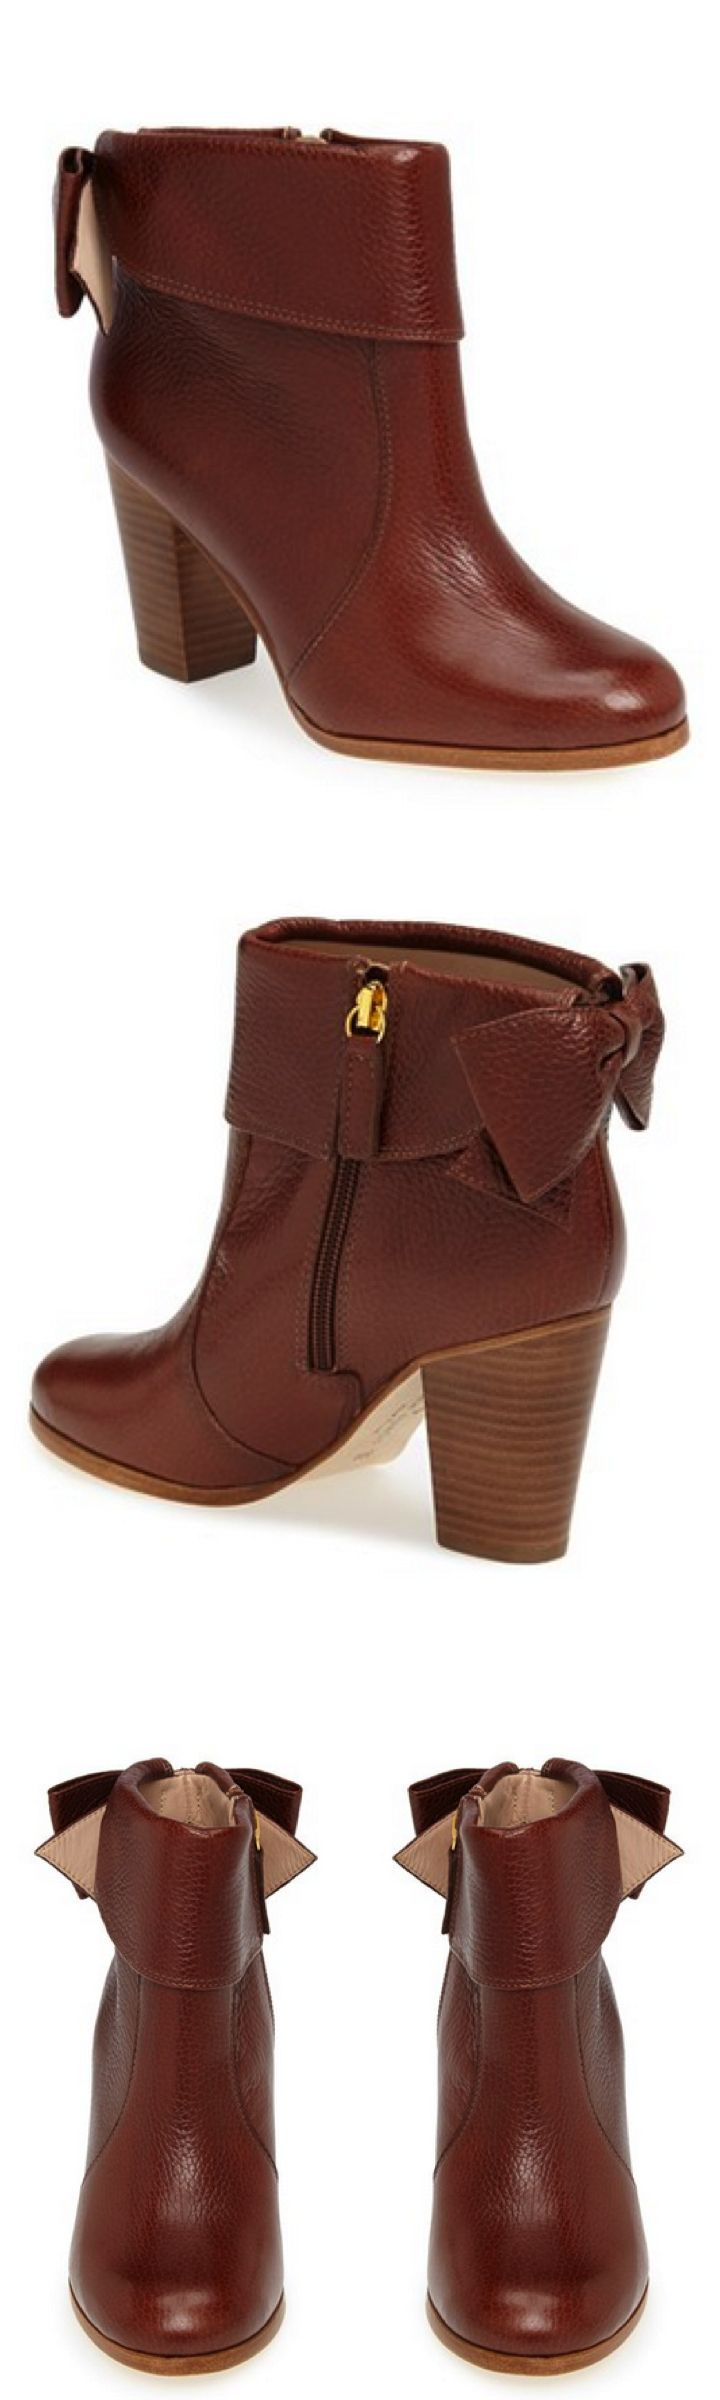 Cutest. booties. ever. #katespade http://rstyle.me/n/ss9ain2bn